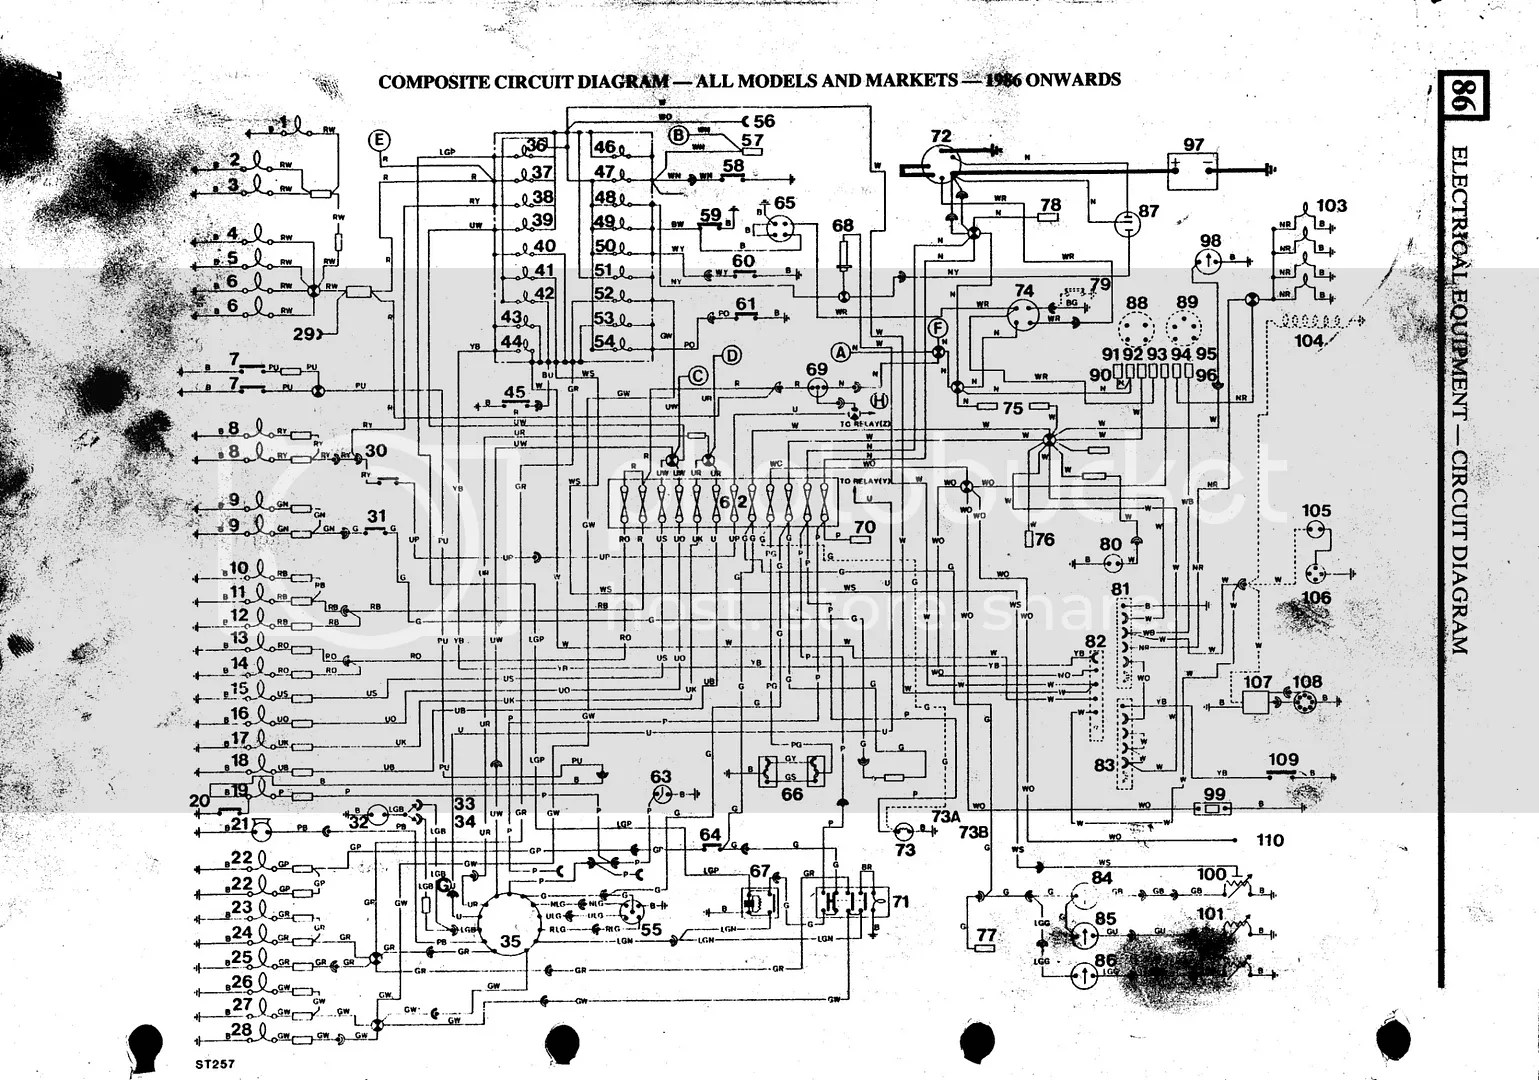 Wiring Diagram Land Rover 90 | Wiring Diagram